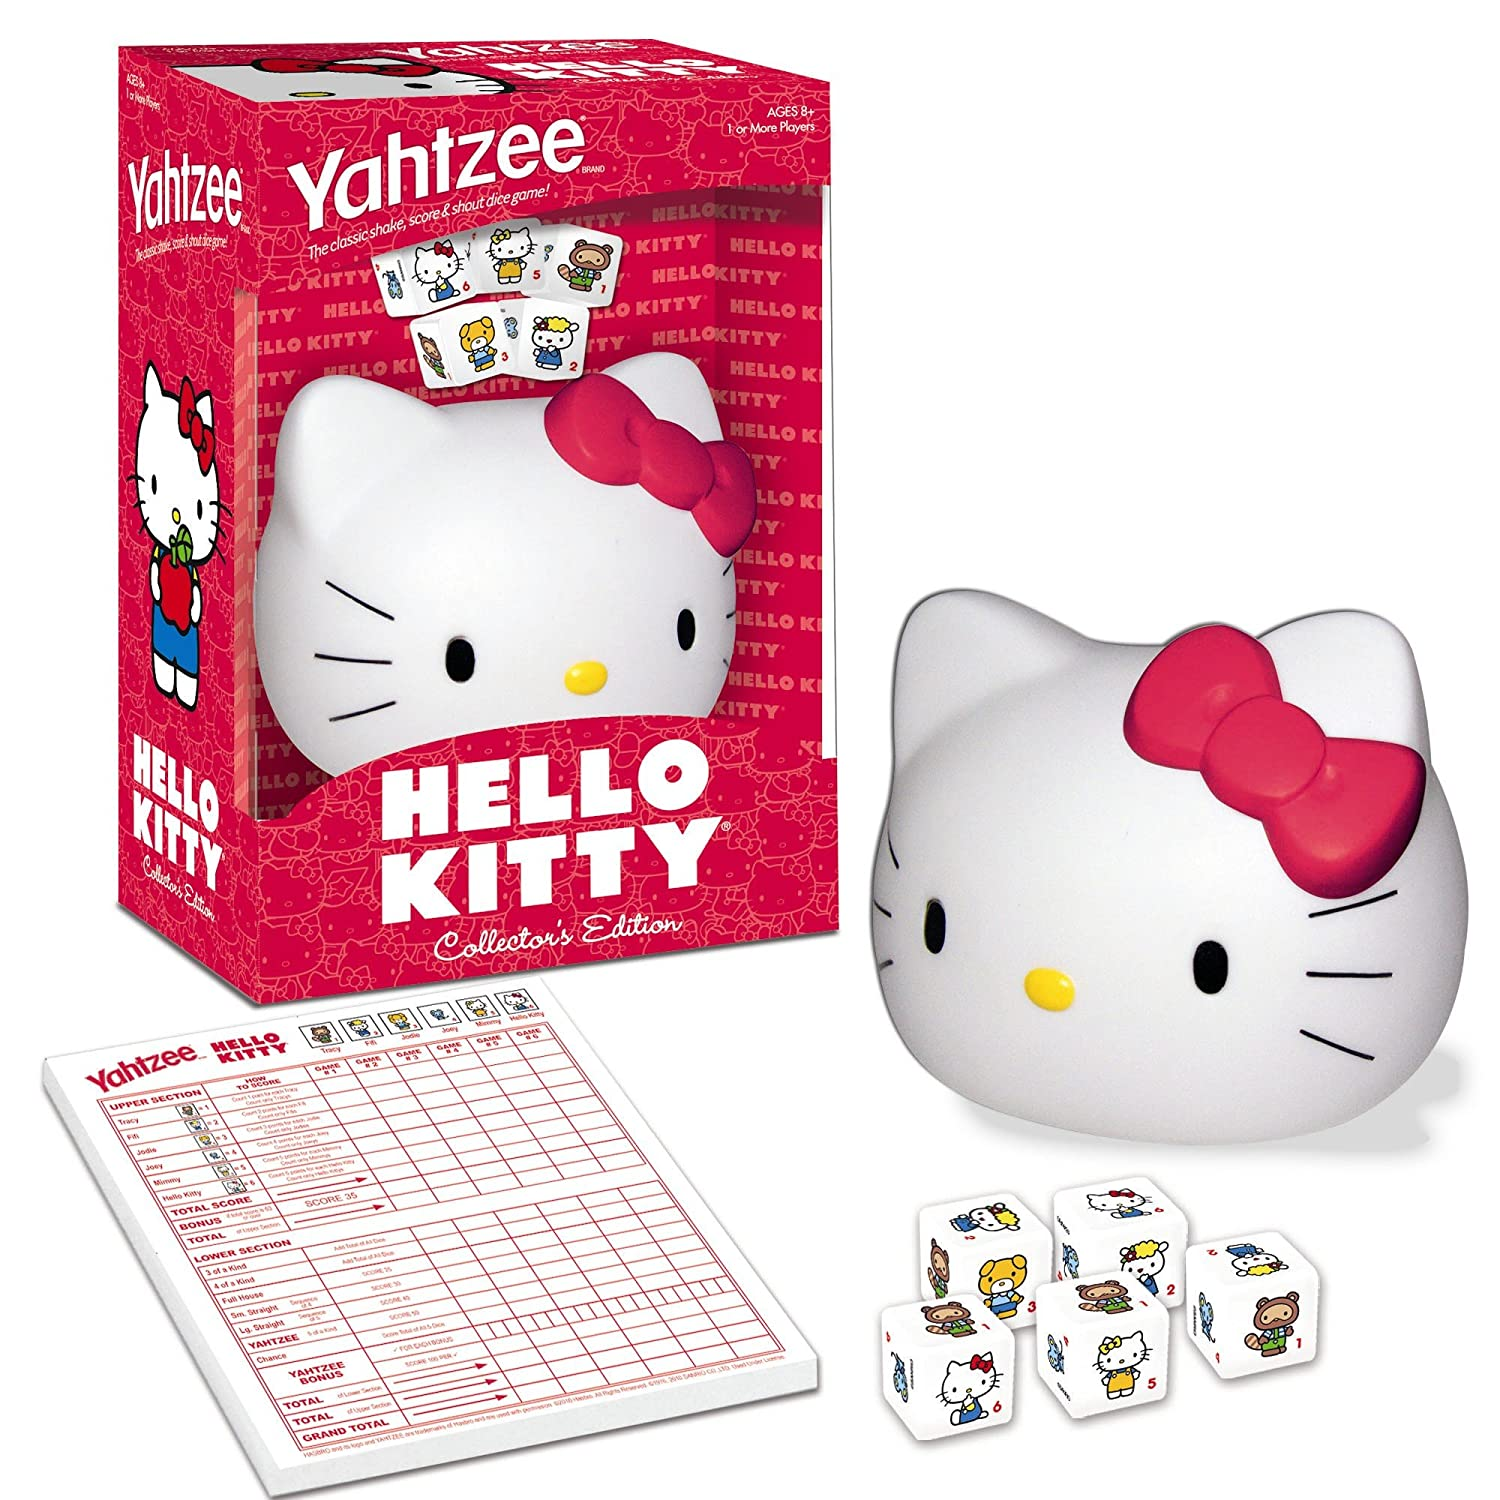 ba7d470ef Amazon.com: Yahtzee Hello Kitty: Toys & Games